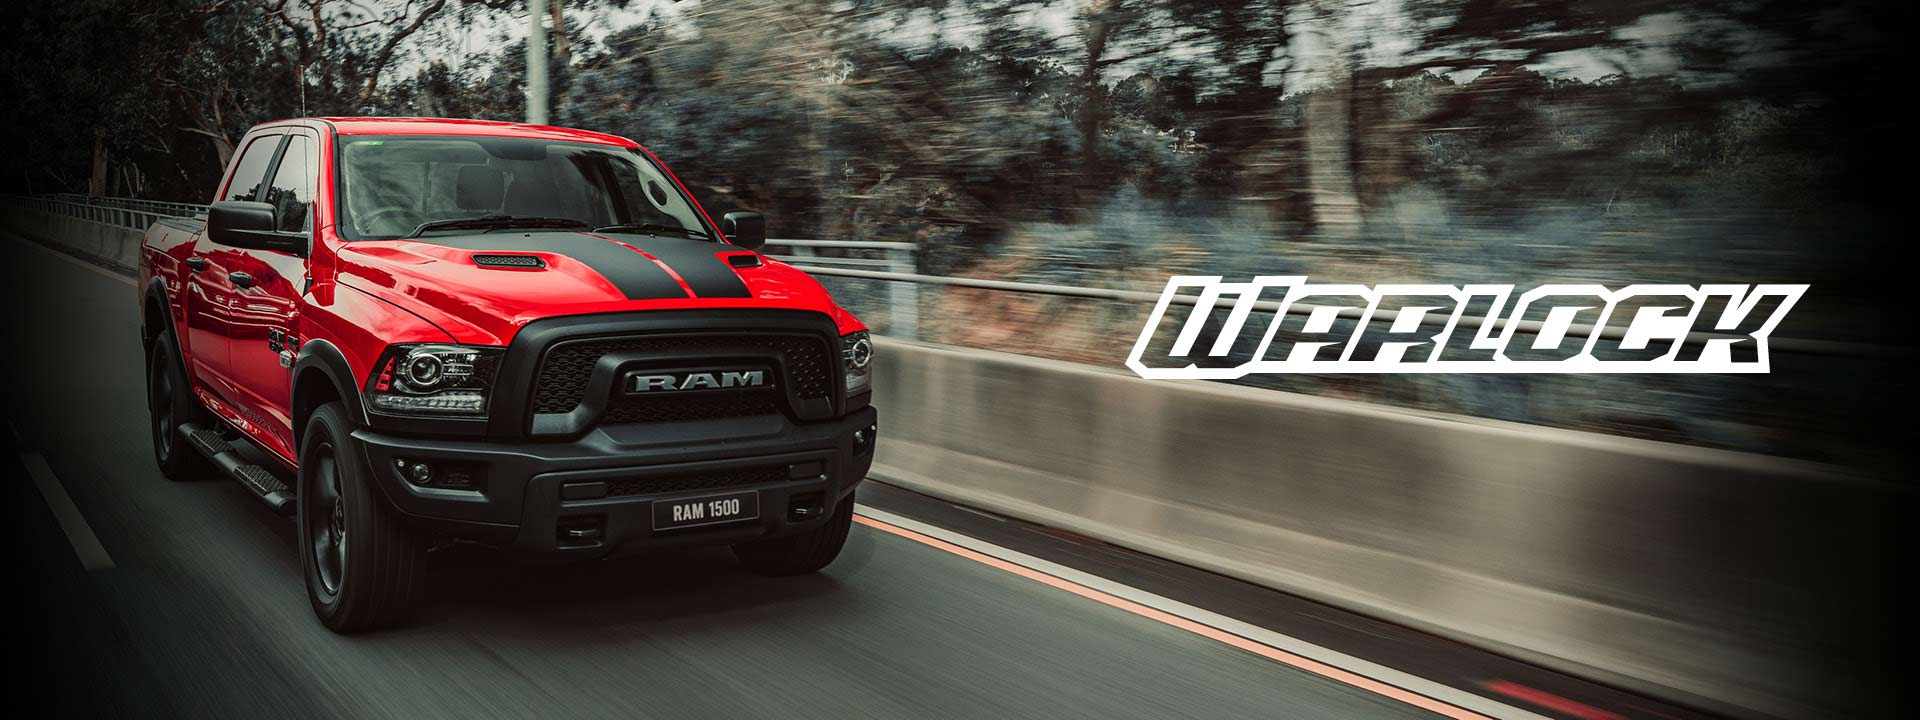 Ram 1500 Warlock |Australia's Toughest 4x4 Pickup Truck |Eats Utes for Breakfast |V8 Hemi |Ram Trucks Australia